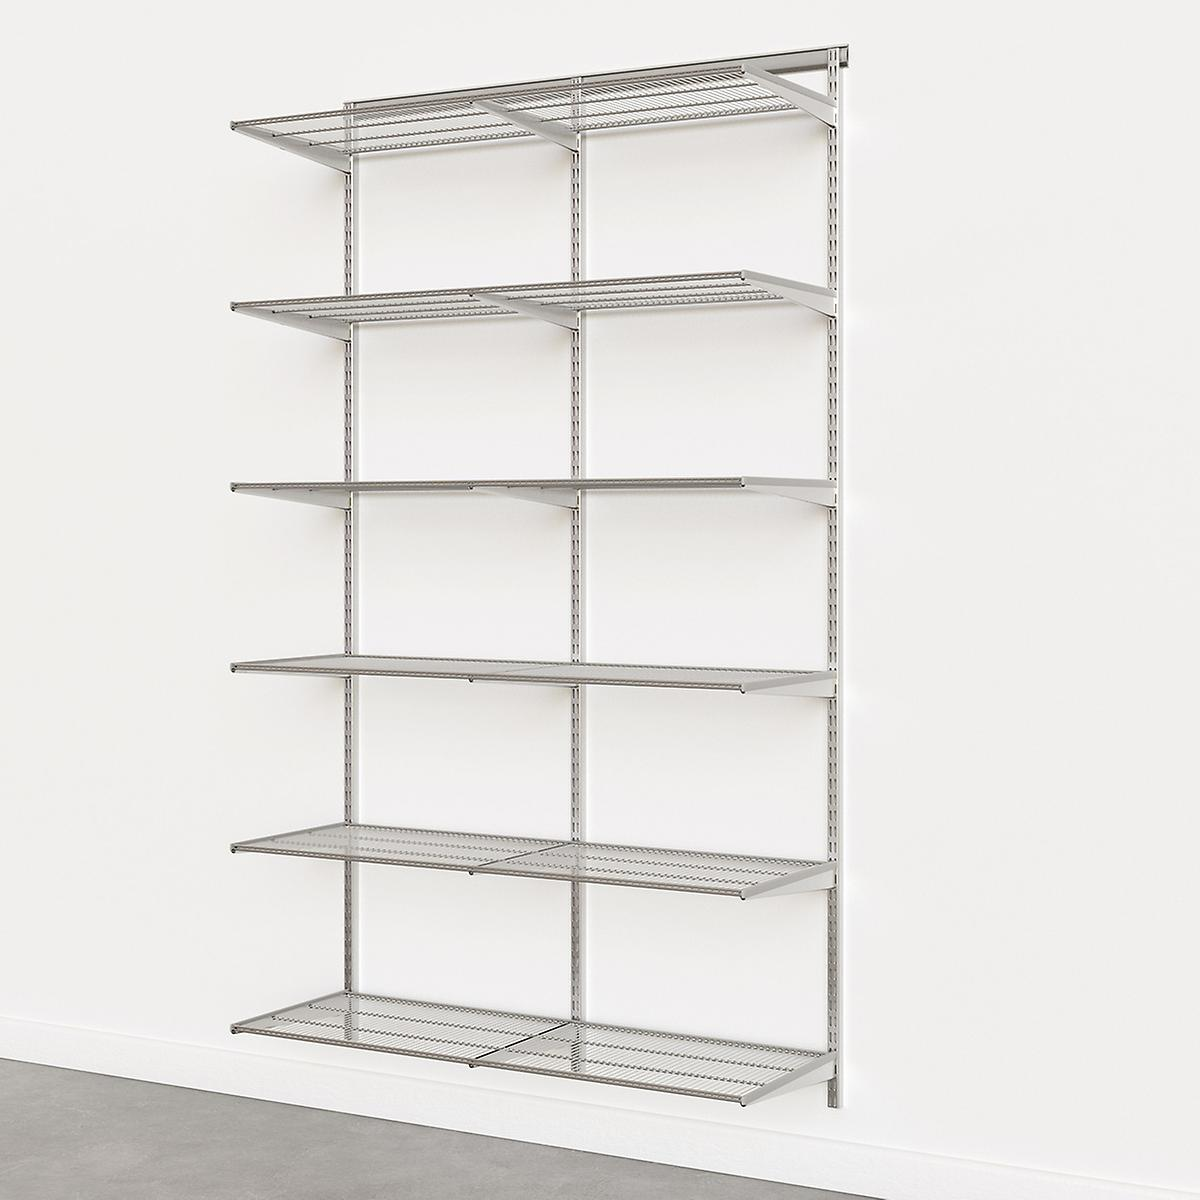 Elfa Classic Platinum 4' Basic Shelving Units for Anywhere